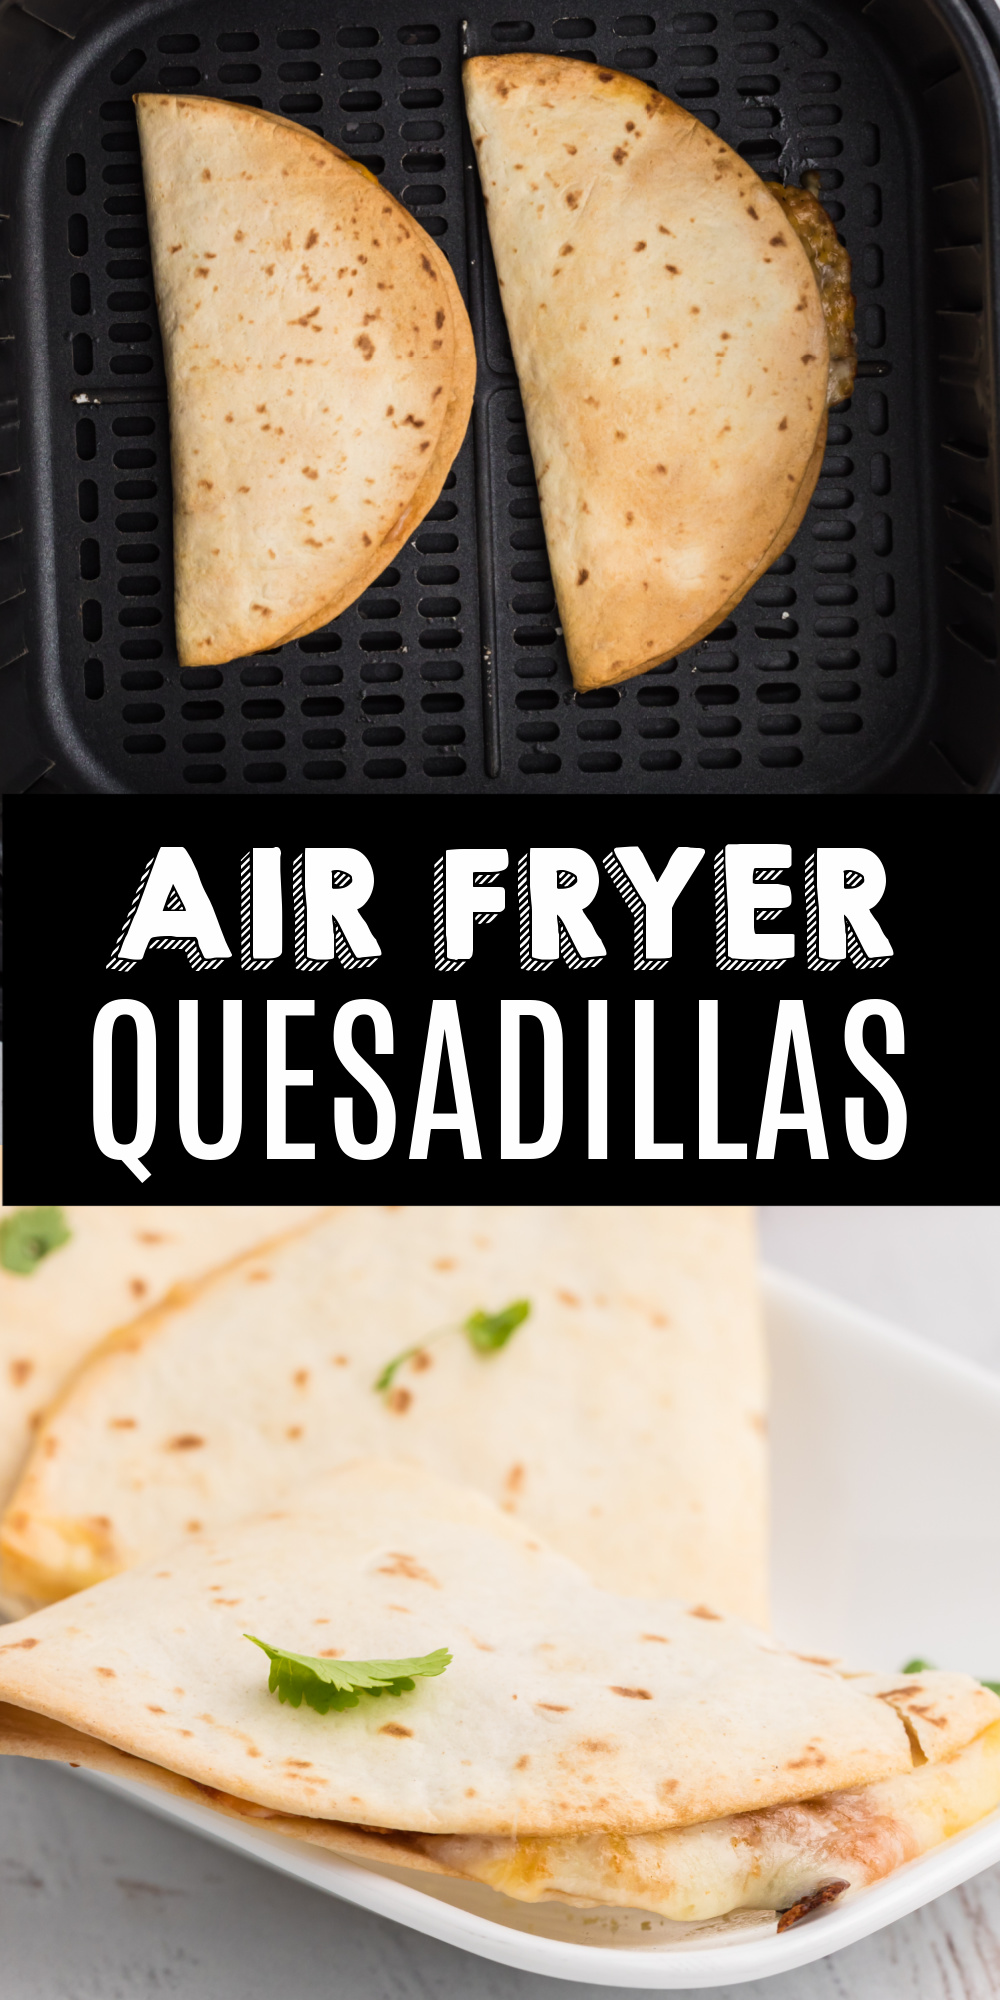 Who doesn't love Mexican food? You can get your fix in less than 10 minutes with this recipe. These Air Fryer Quesadillas are a family favorite at my house. Delicious, easy, and cheesy. You'll have that perfect crispy tortilla with this simple recipe everyone loves.